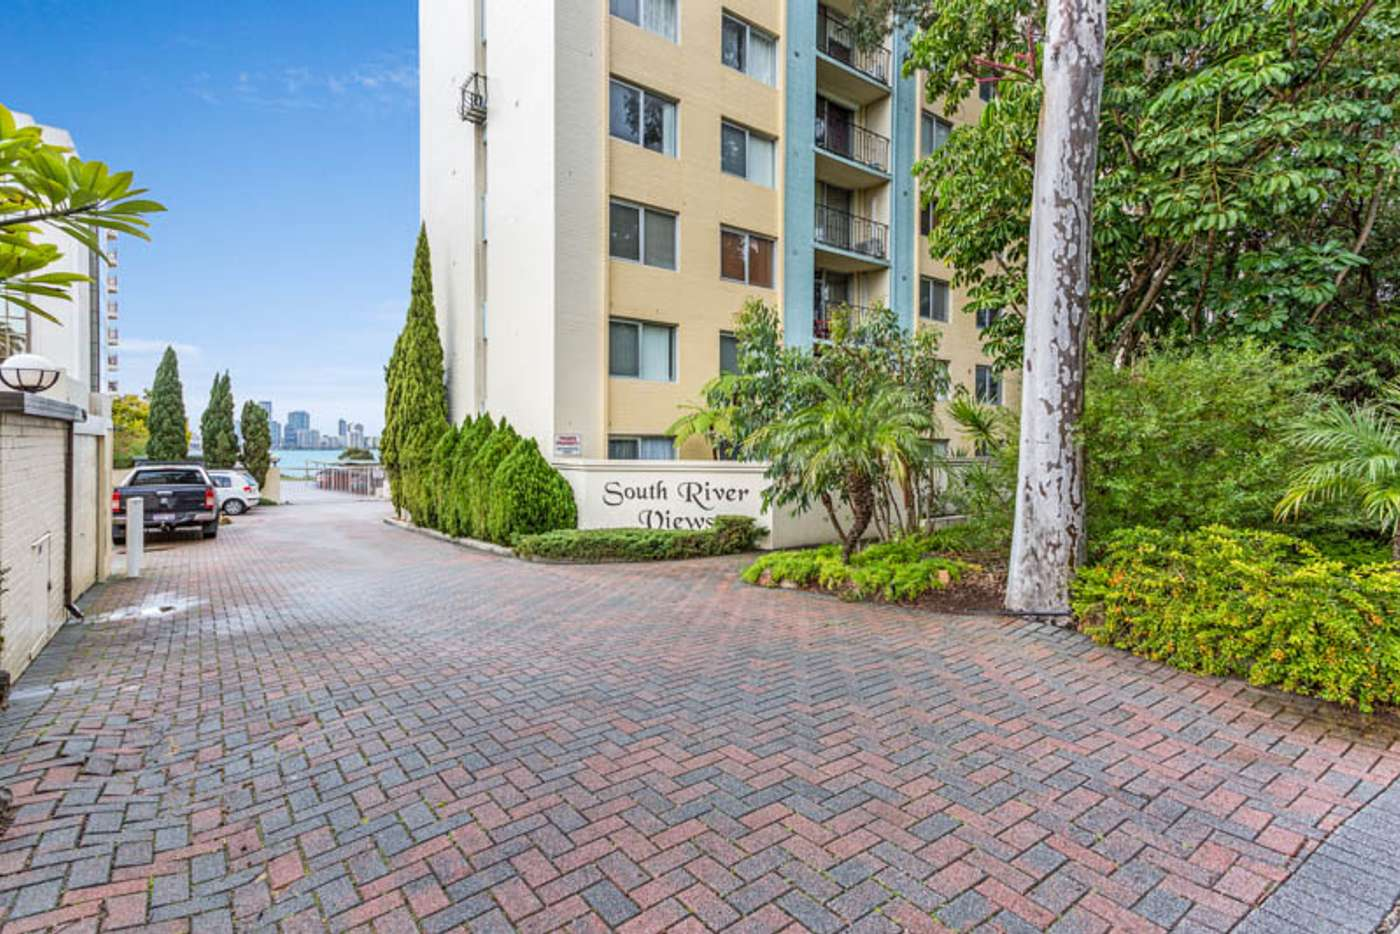 Main view of Homely apartment listing, 44/160 Mill Point Road, South Perth WA 6151